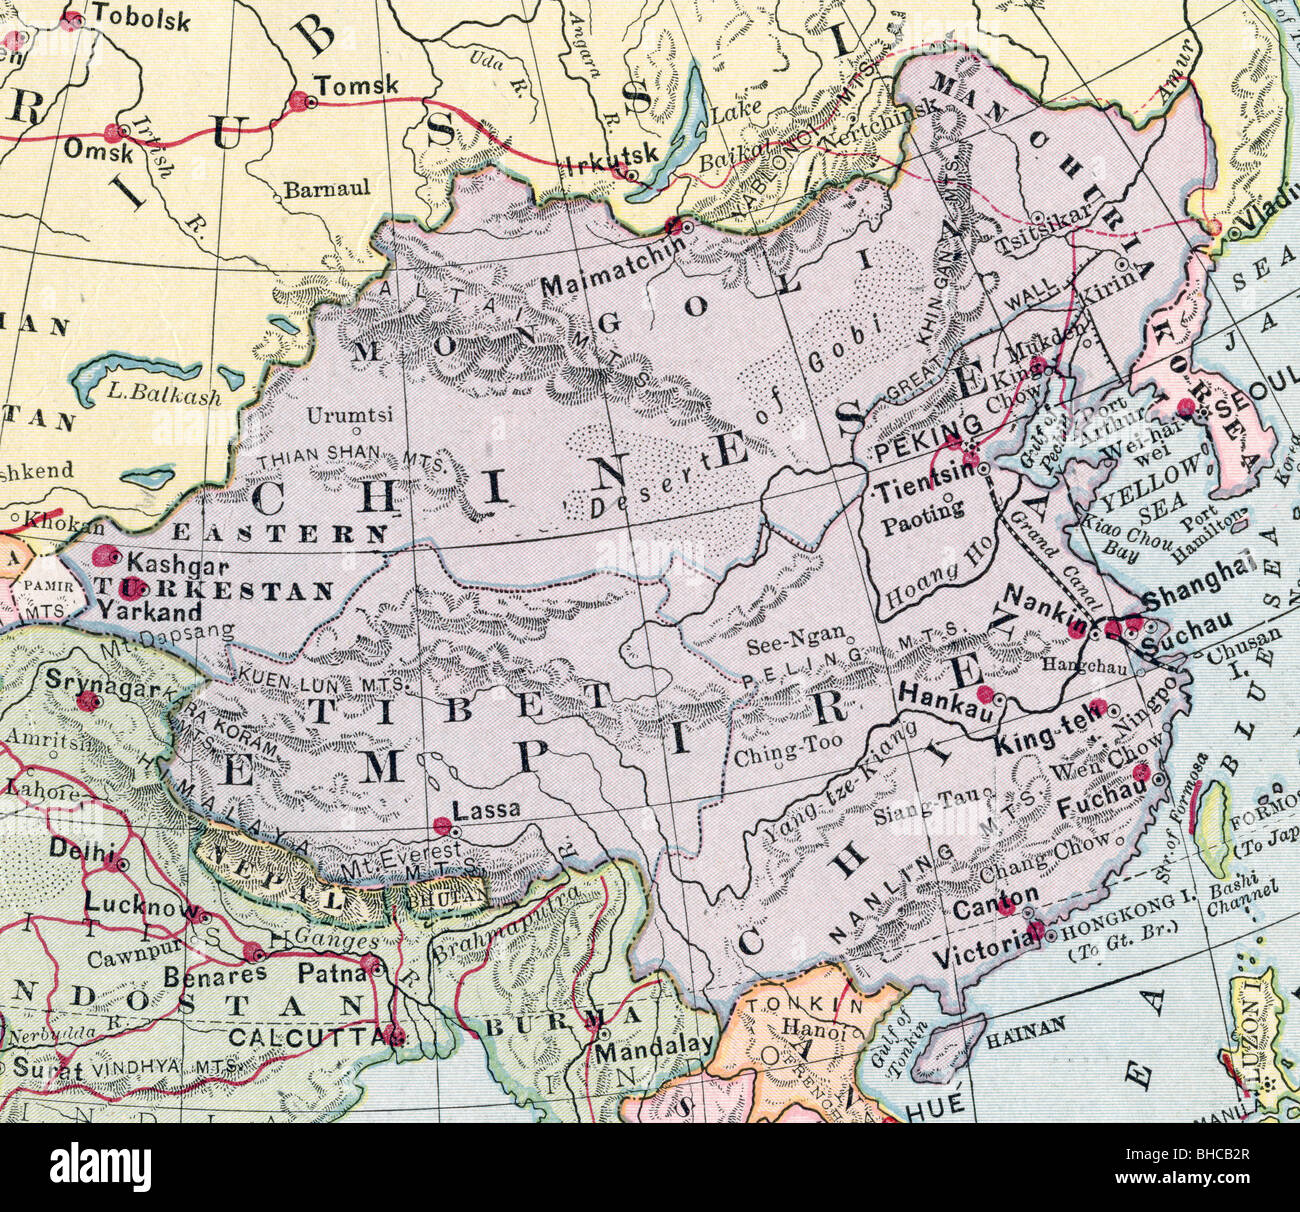 Old map china empire stock photos old map china empire stock original old map of china empire from 1903 geography textbook stock image gumiabroncs Image collections